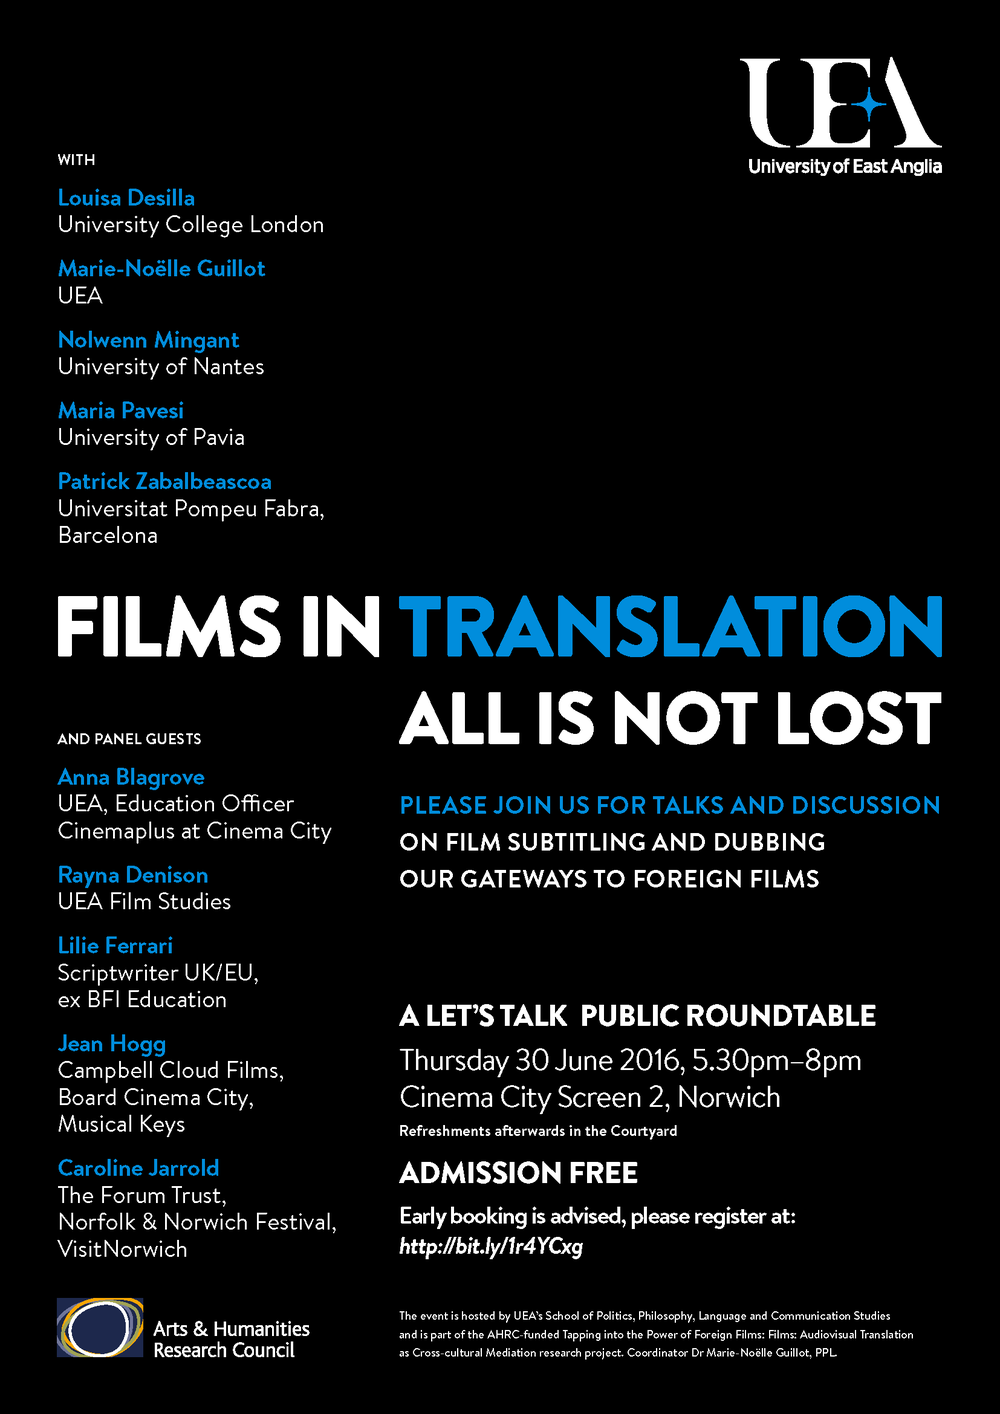 Uea films in translation audiovisual translation public roundtable cinema city norwich thursday 30 june 2016 530pm 8pm admission free fandeluxe Choice Image